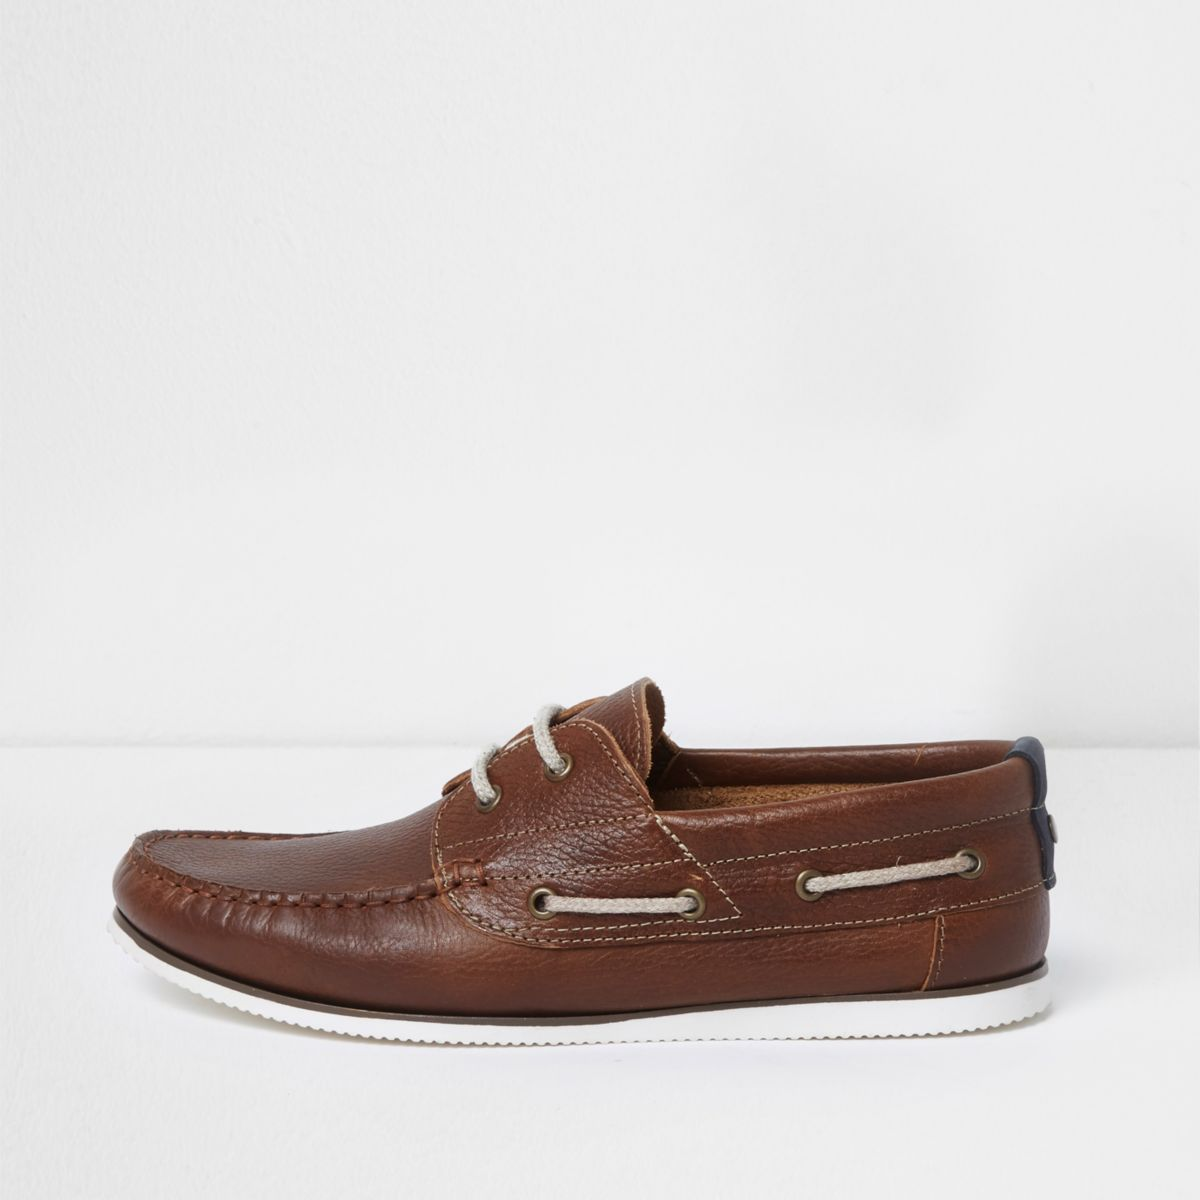 River Island Woven Boat Shoes fashion shoes clearance  hot sale online